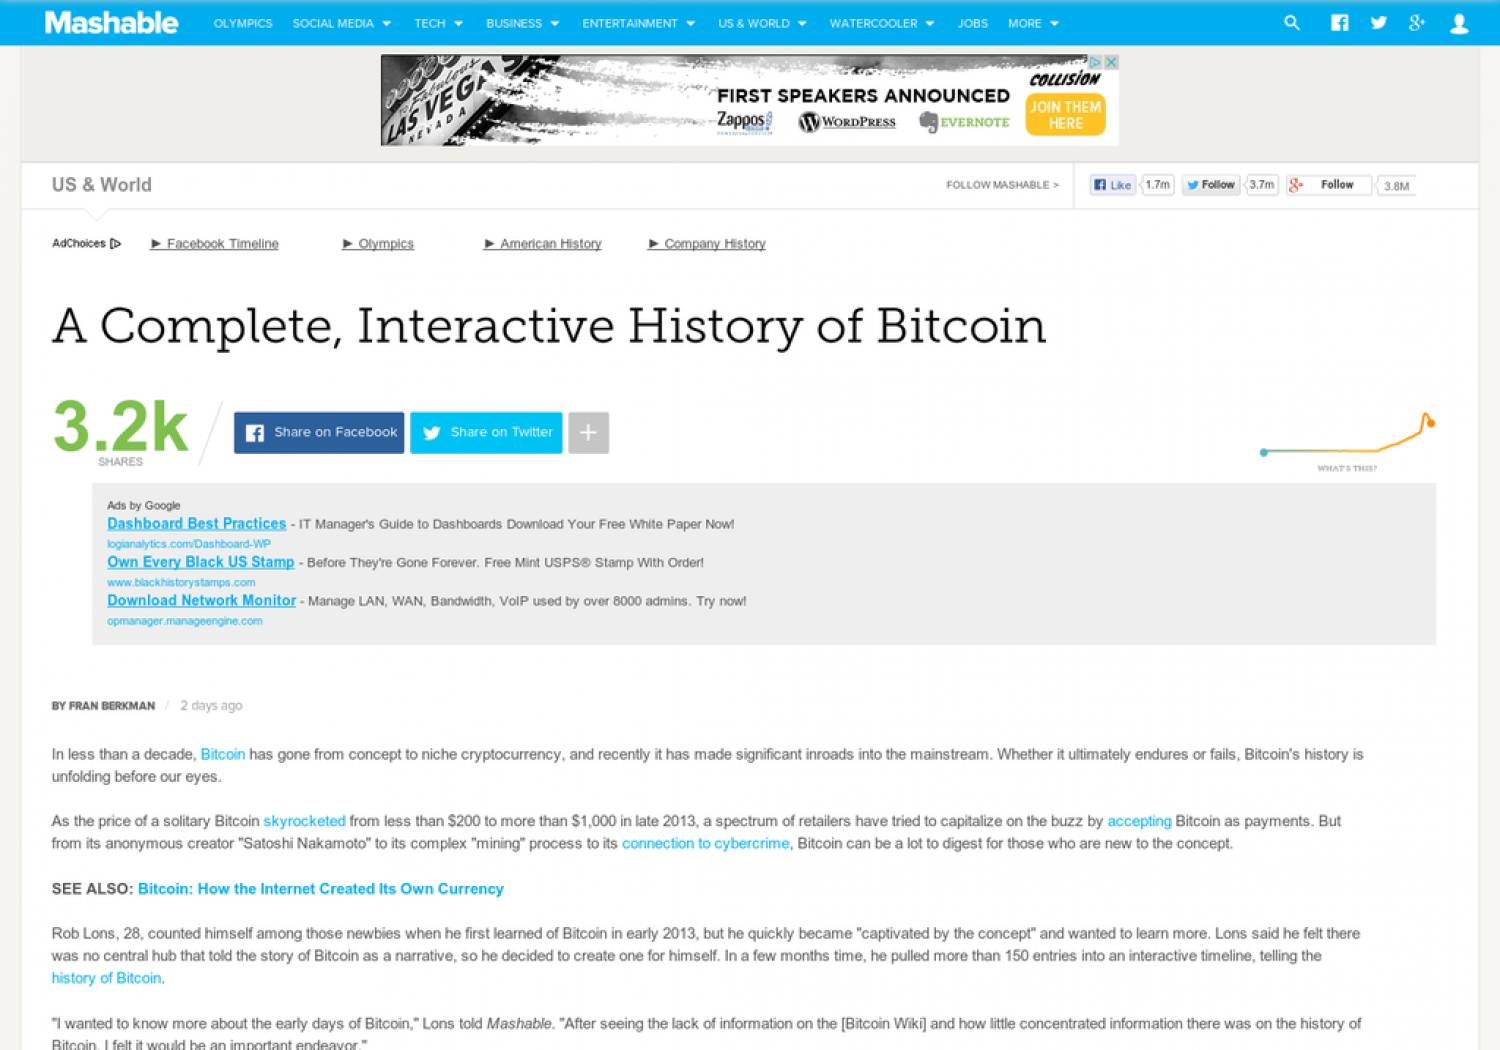 A Complete, Interactive History of Bitcoin Infographic